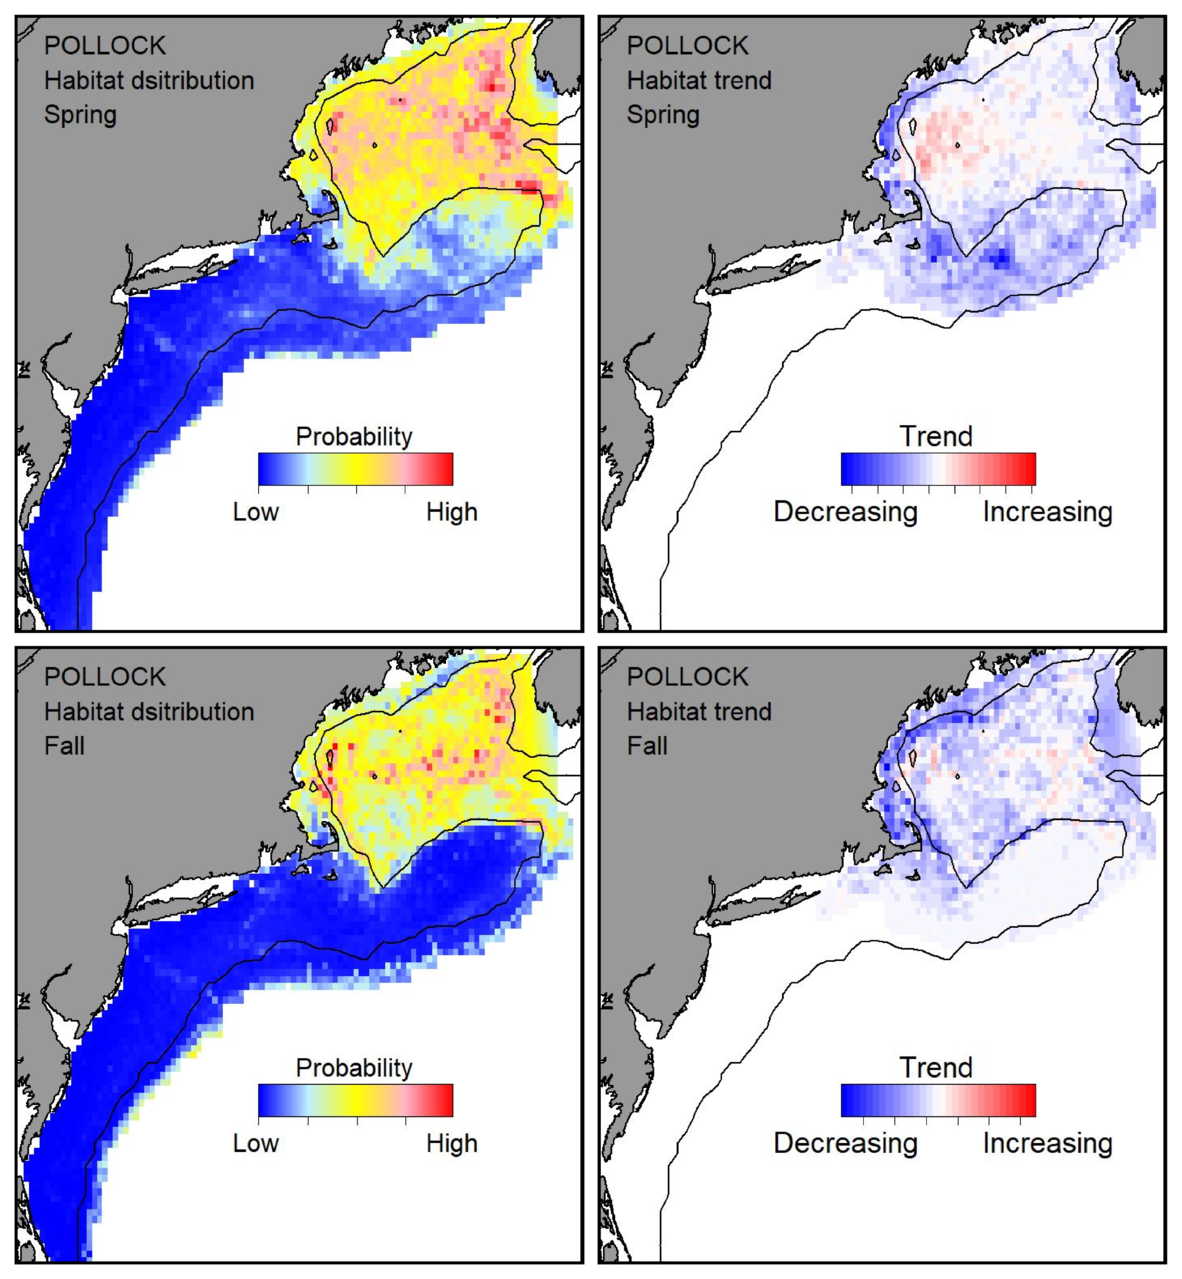 Top row: Probable habitat distribution for pollock showing the highest concentration and increasing trend in the Gulf of Maine during the spring. Bottom row: Probable habitat distribution for pollock showing the highest concentration and increasing trend in the Gulf of Maine during the fall.